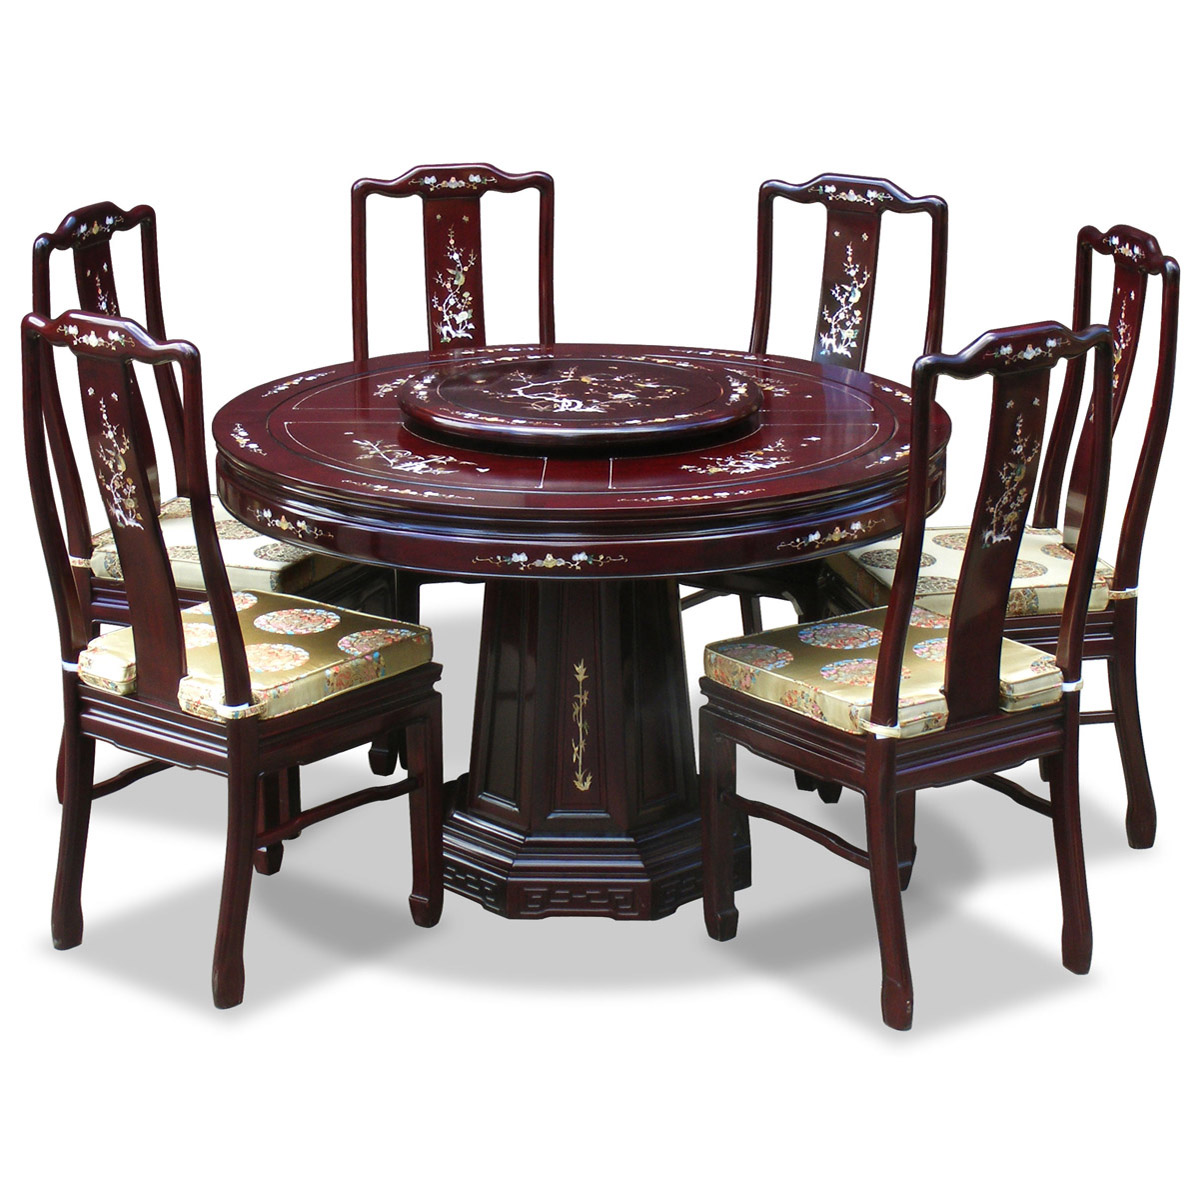 Wood Dining Room Table With Glass Inlay Dining Room Ideas